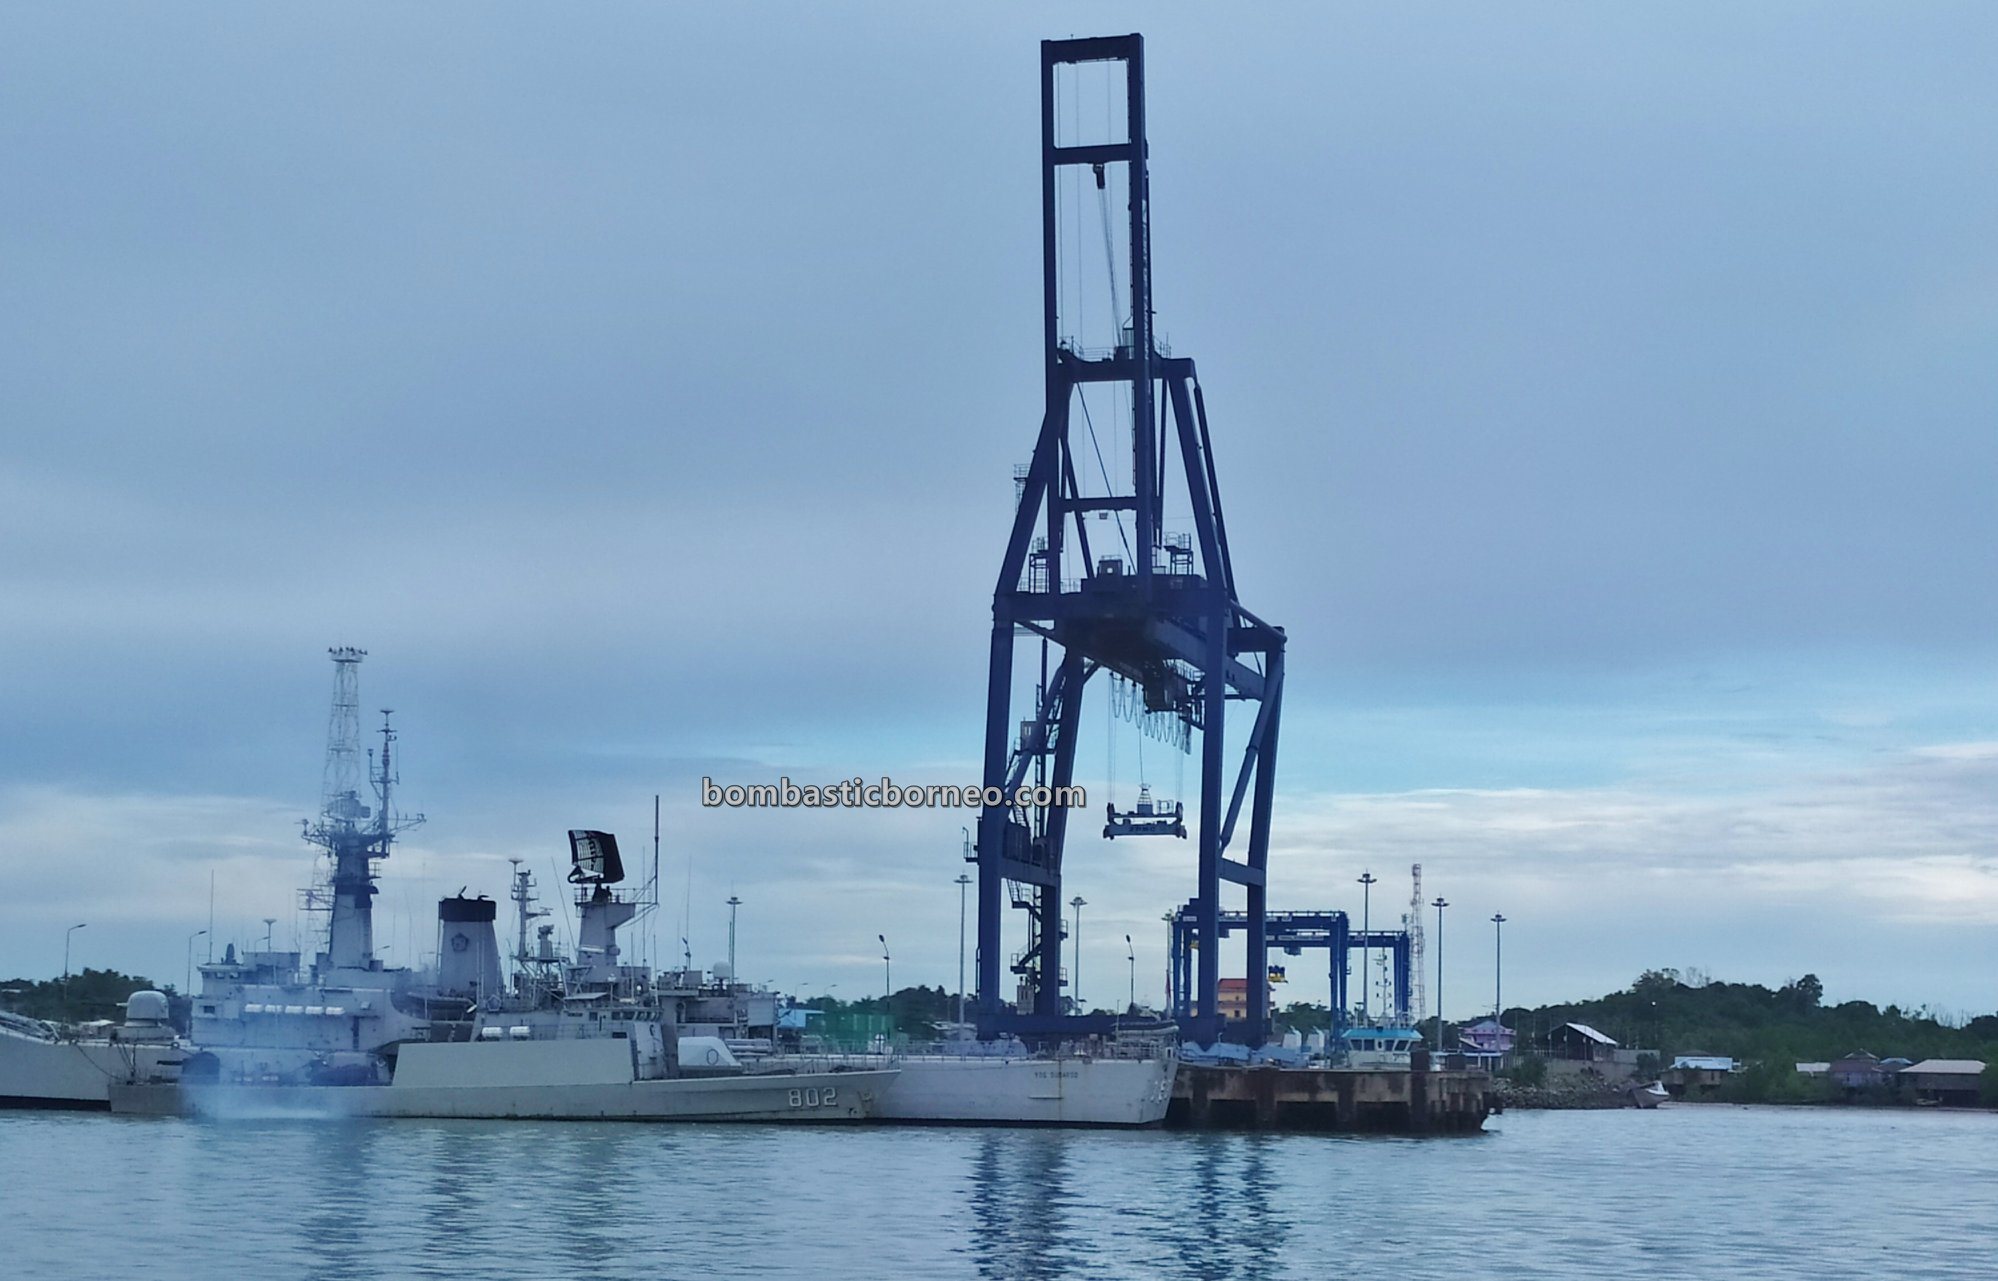 Ferry terminal, Express Boat Ride, backpackers, exploration, Indonesia, North Kalimantan, Kapal Besar, Kota Tarakan, MV Tawindo, Pelabuhan Malundung, port, Tourism, travel guide, Trans Border, Borneo,